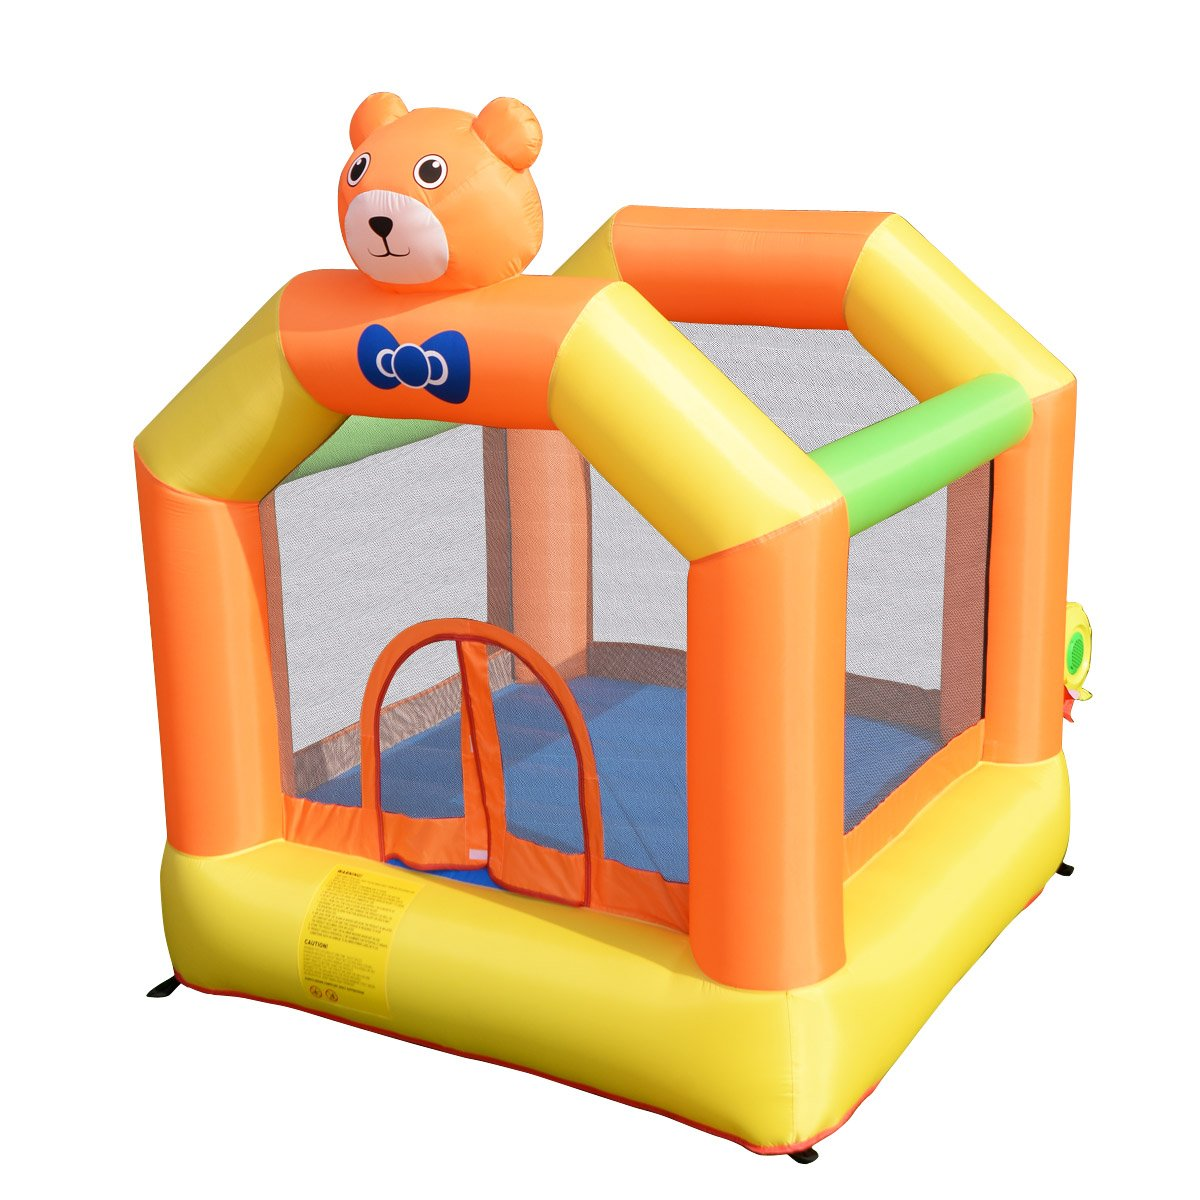 Costzon Inflatable Bounce House, Castle Jumper Slide Mesh Walls, Kids Party Jump Bouncer House w/Net, Carry Bag Without Blower (Cutty Bear Themed)